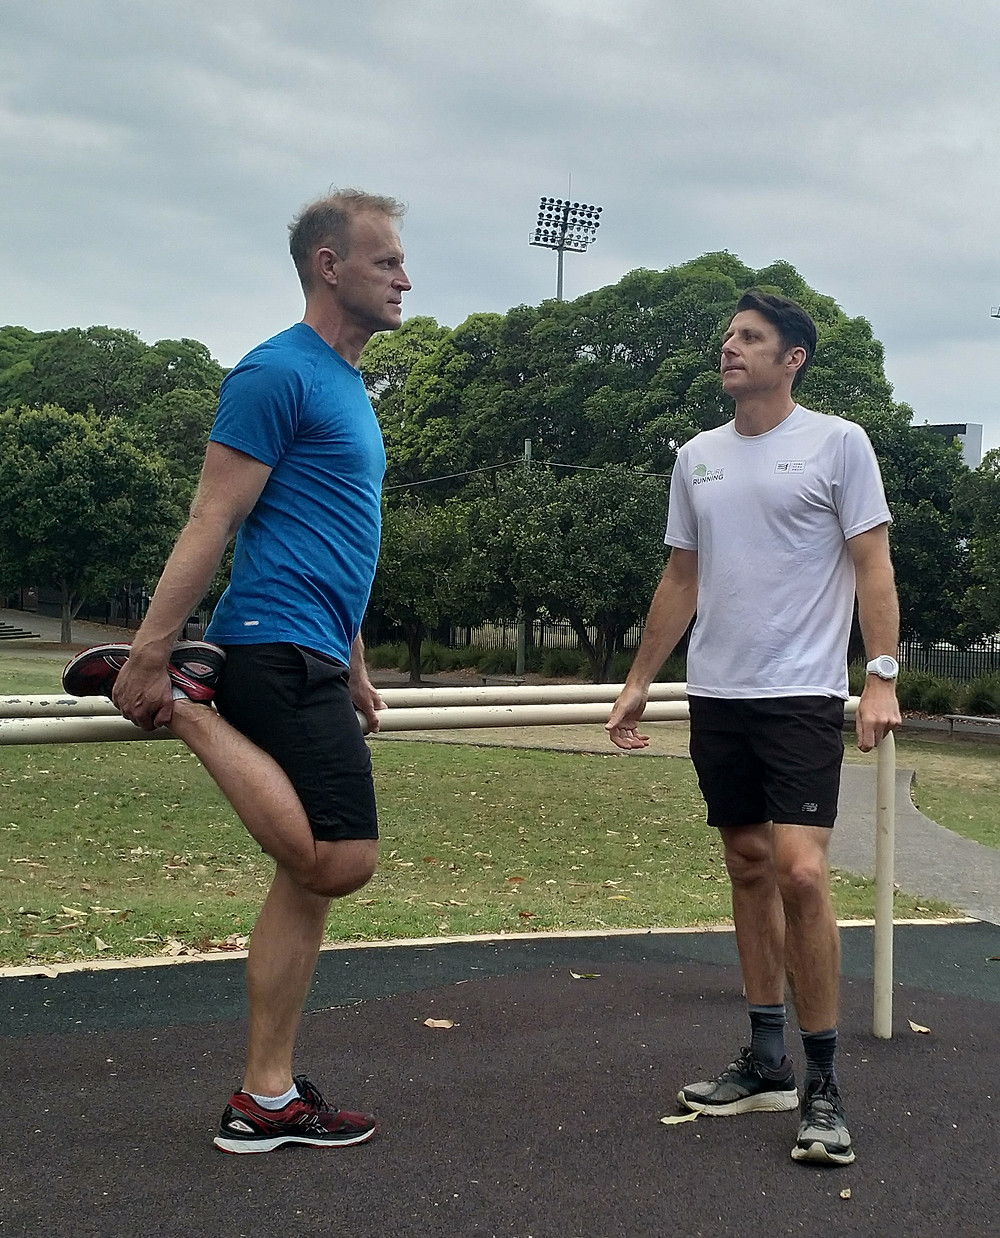 Mobile personal trainer instructing client in a park